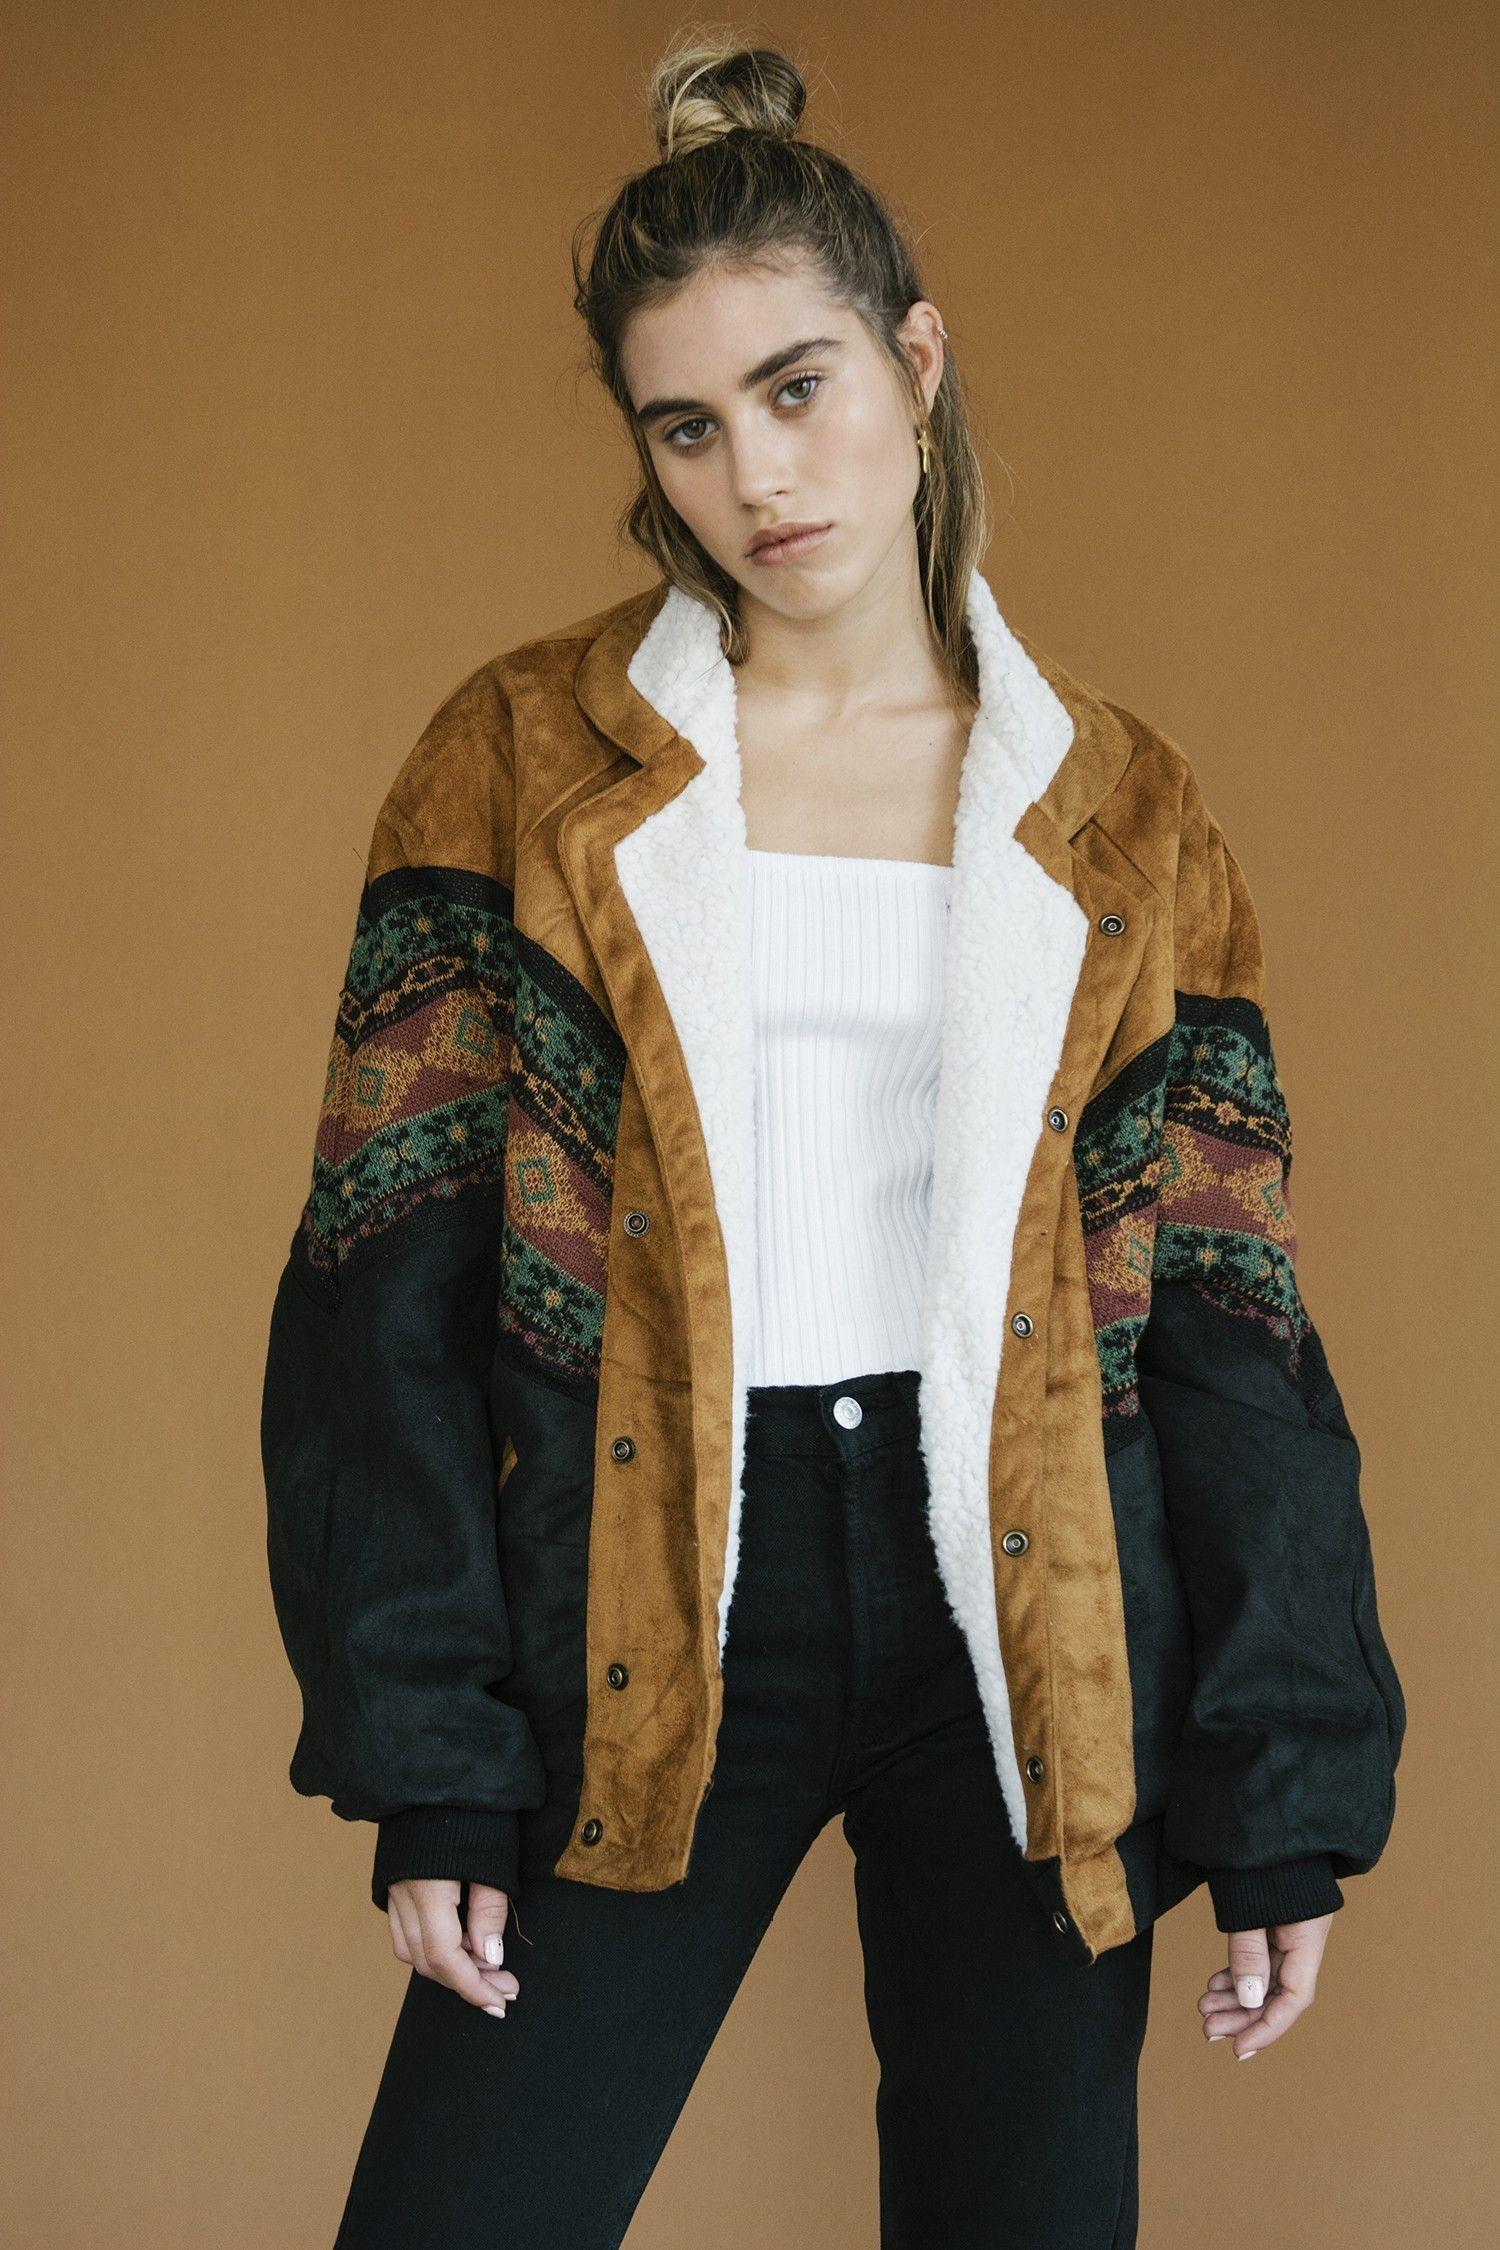 Alaska Brown Navajo Bomber Arizona Babe Fashion Hippie Outfits Casual Chic Outfit [ 2250 x 1500 Pixel ]